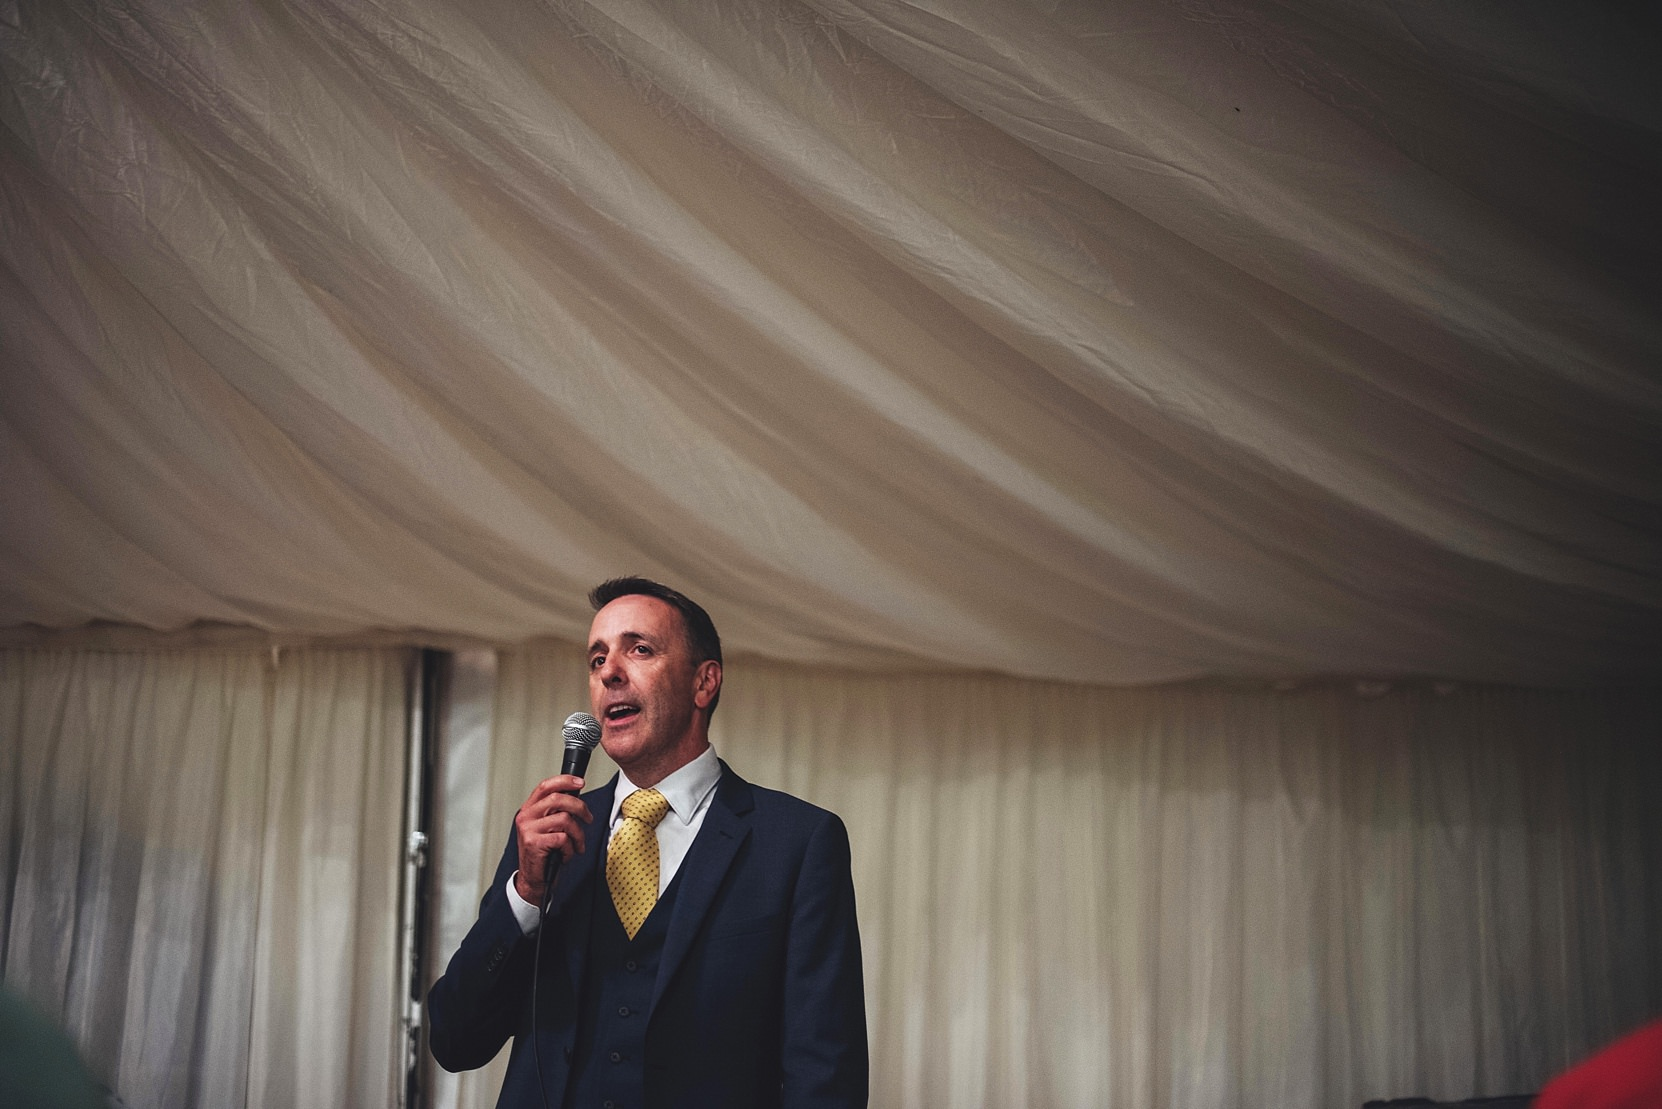 The bestman making a speech